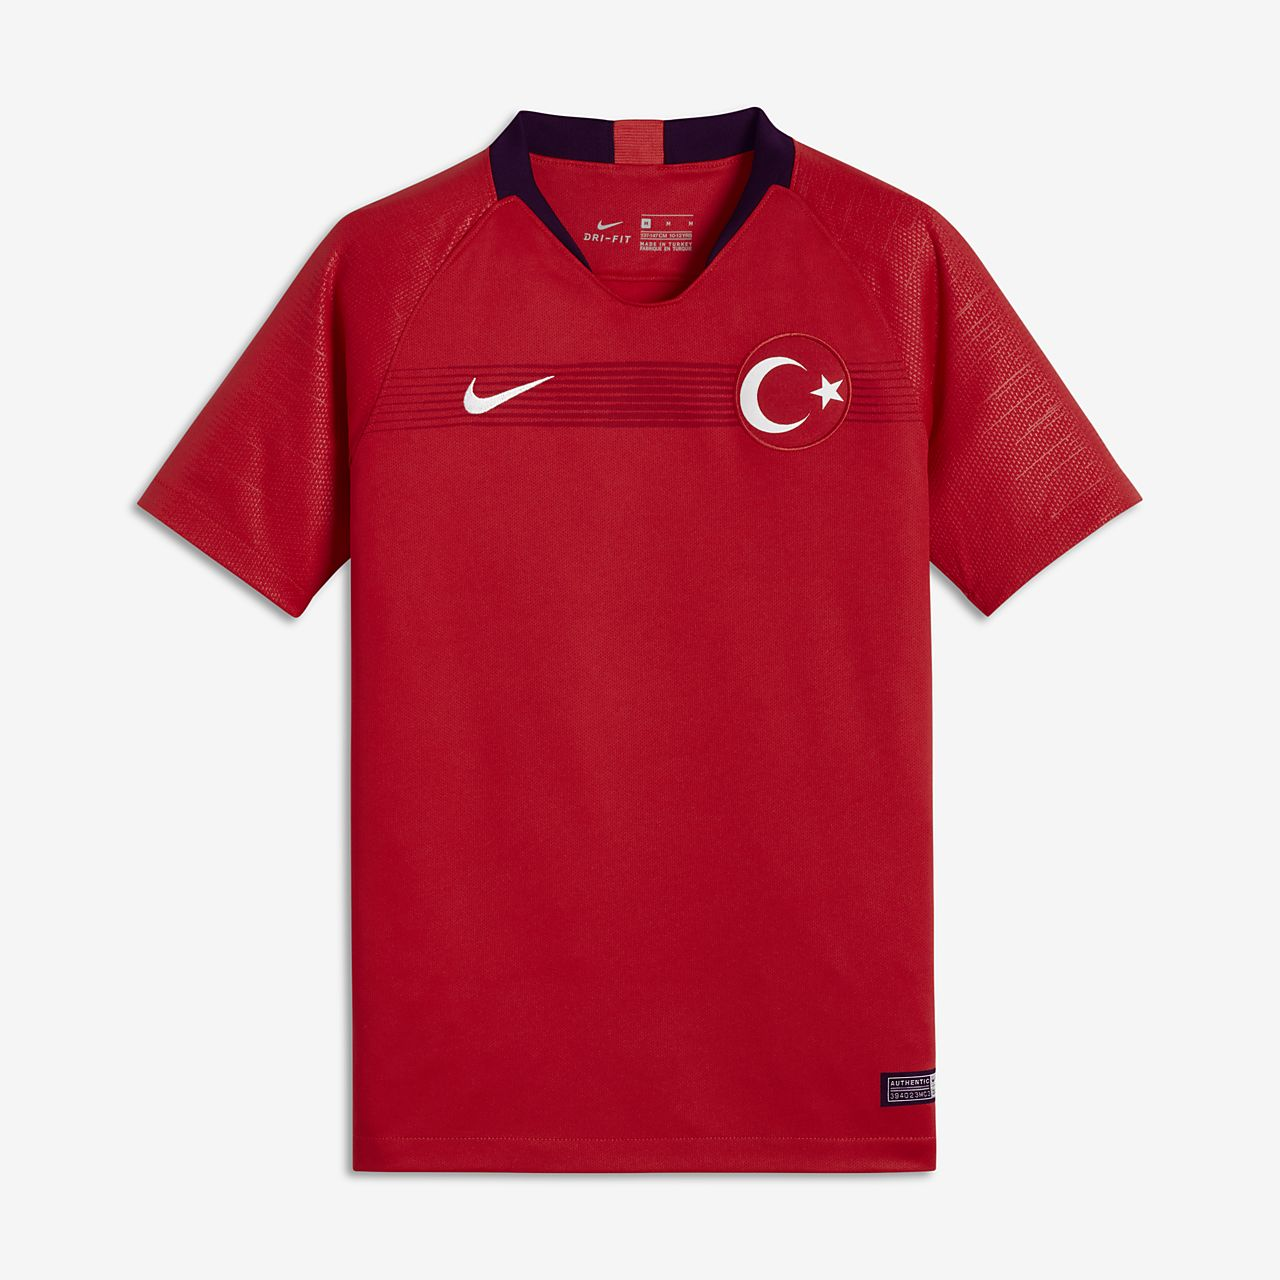 2018 Turkey Stadium Home/Away Older Kids' Football Shirt